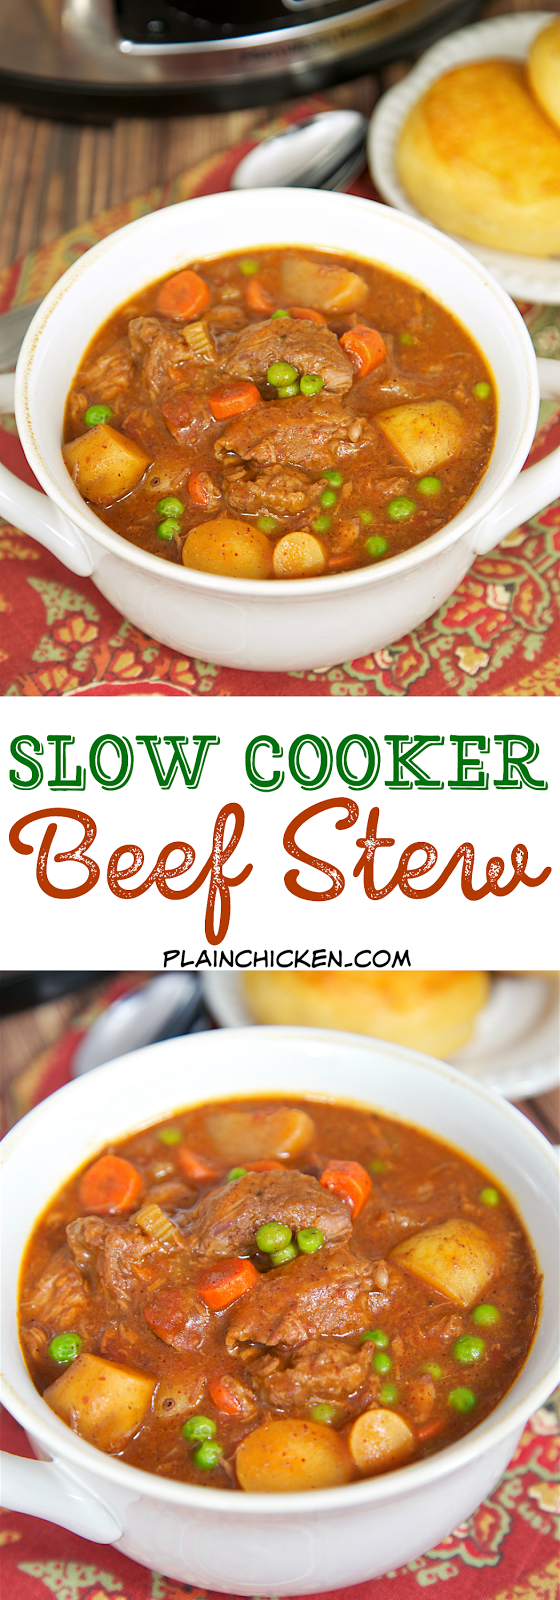 Slow Cooker Beef Stew - beef, potatoes, carrots, green peas, tomatoes ...